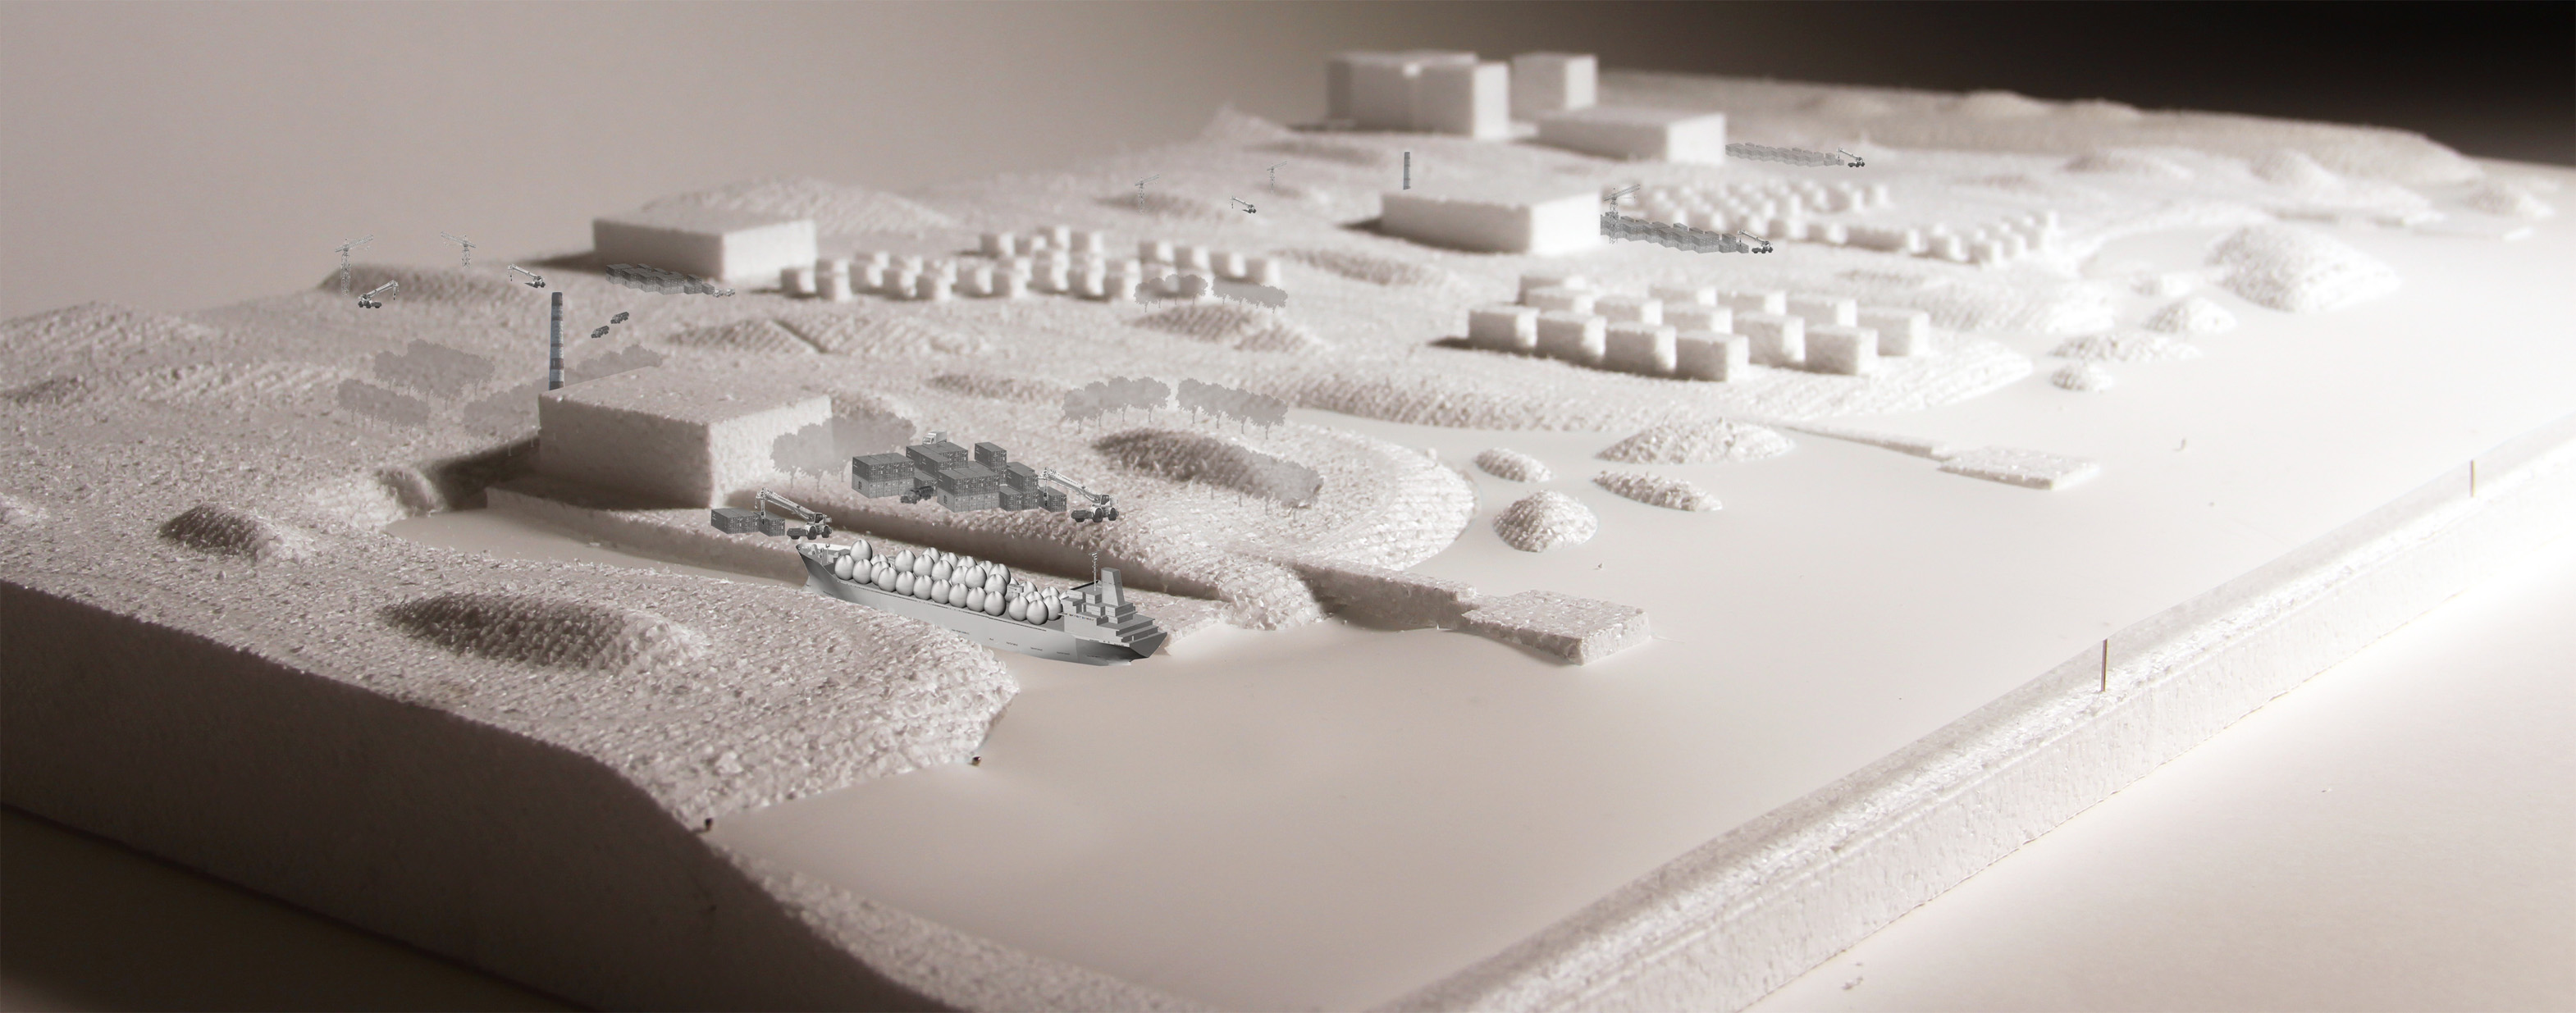 Overall Design Model (Mock) with White Foam